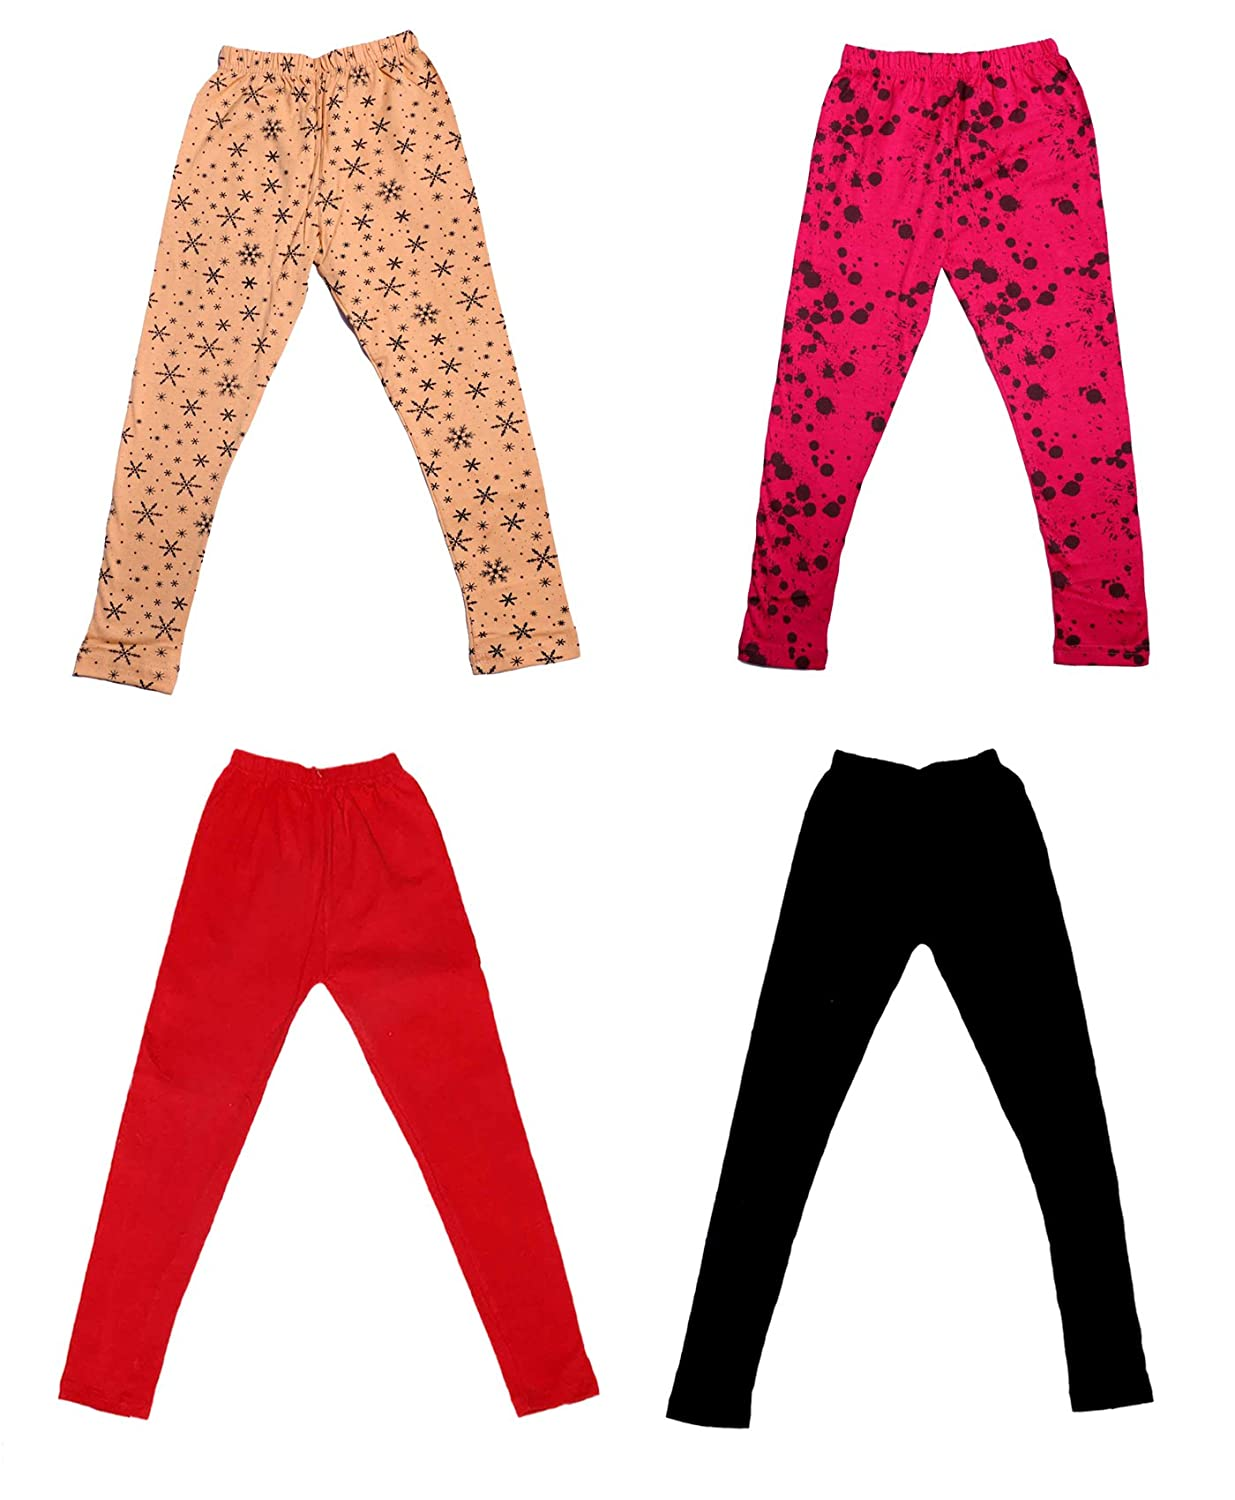 Pack Of 4 and 2 Cotton Printed Legging Pants /_Multicolor/_Size-3-5 Years/_71404051920-IW-P4-24 Indistar Girls 2 Cotton Solid Legging Pants